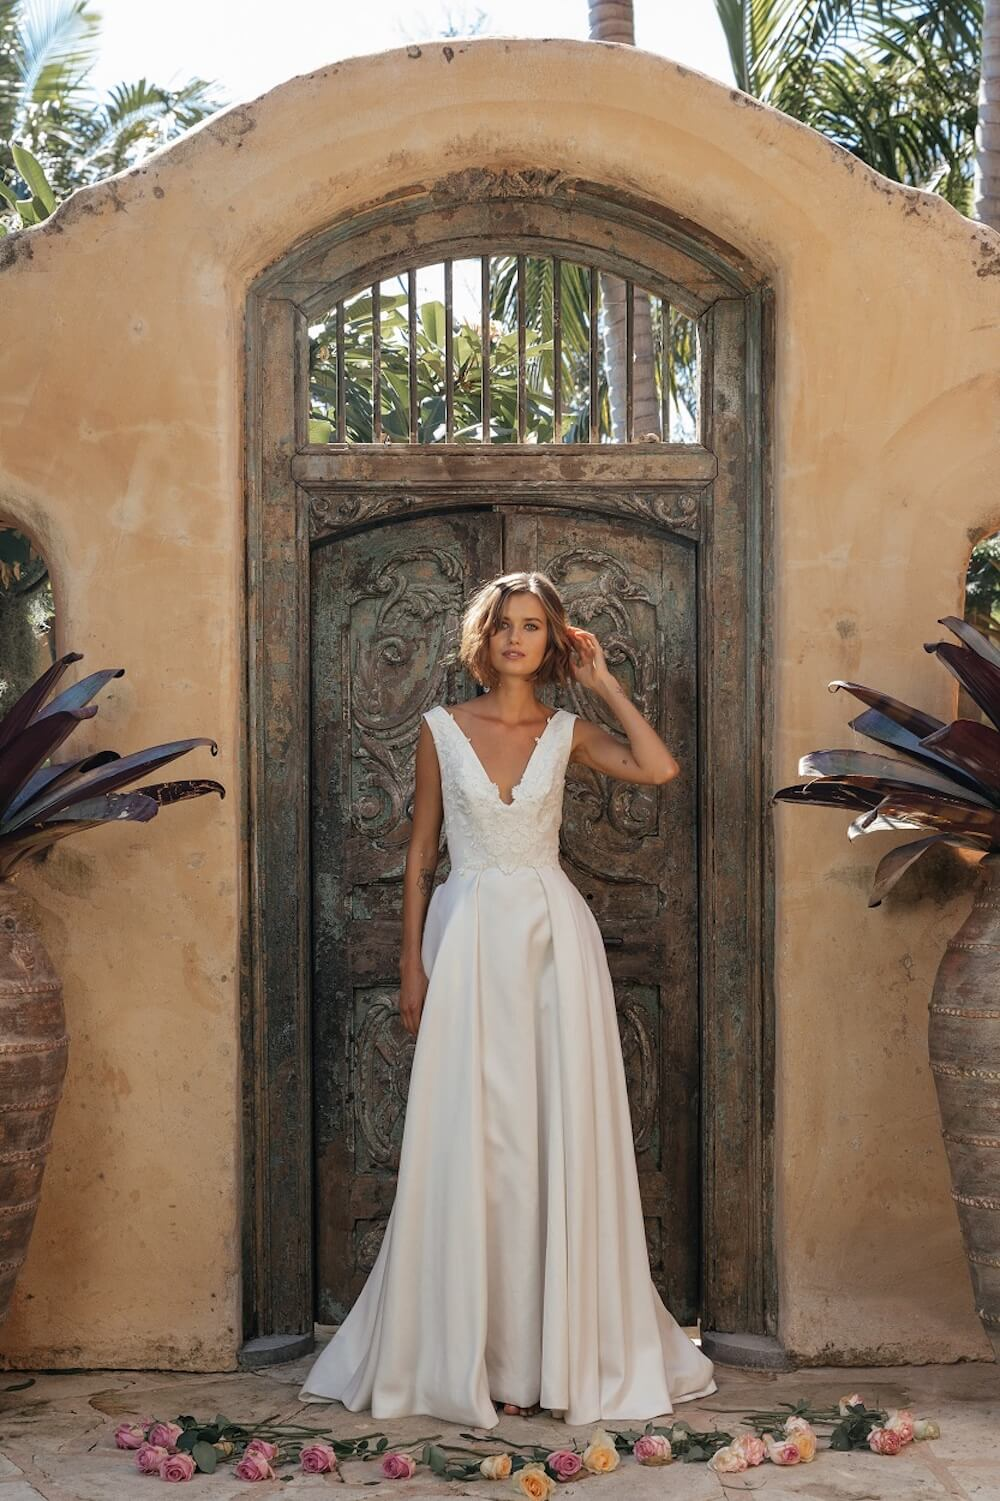 At First Sight wedding dress by Jennifer Go Bridal featured on LOVE FIND CO.